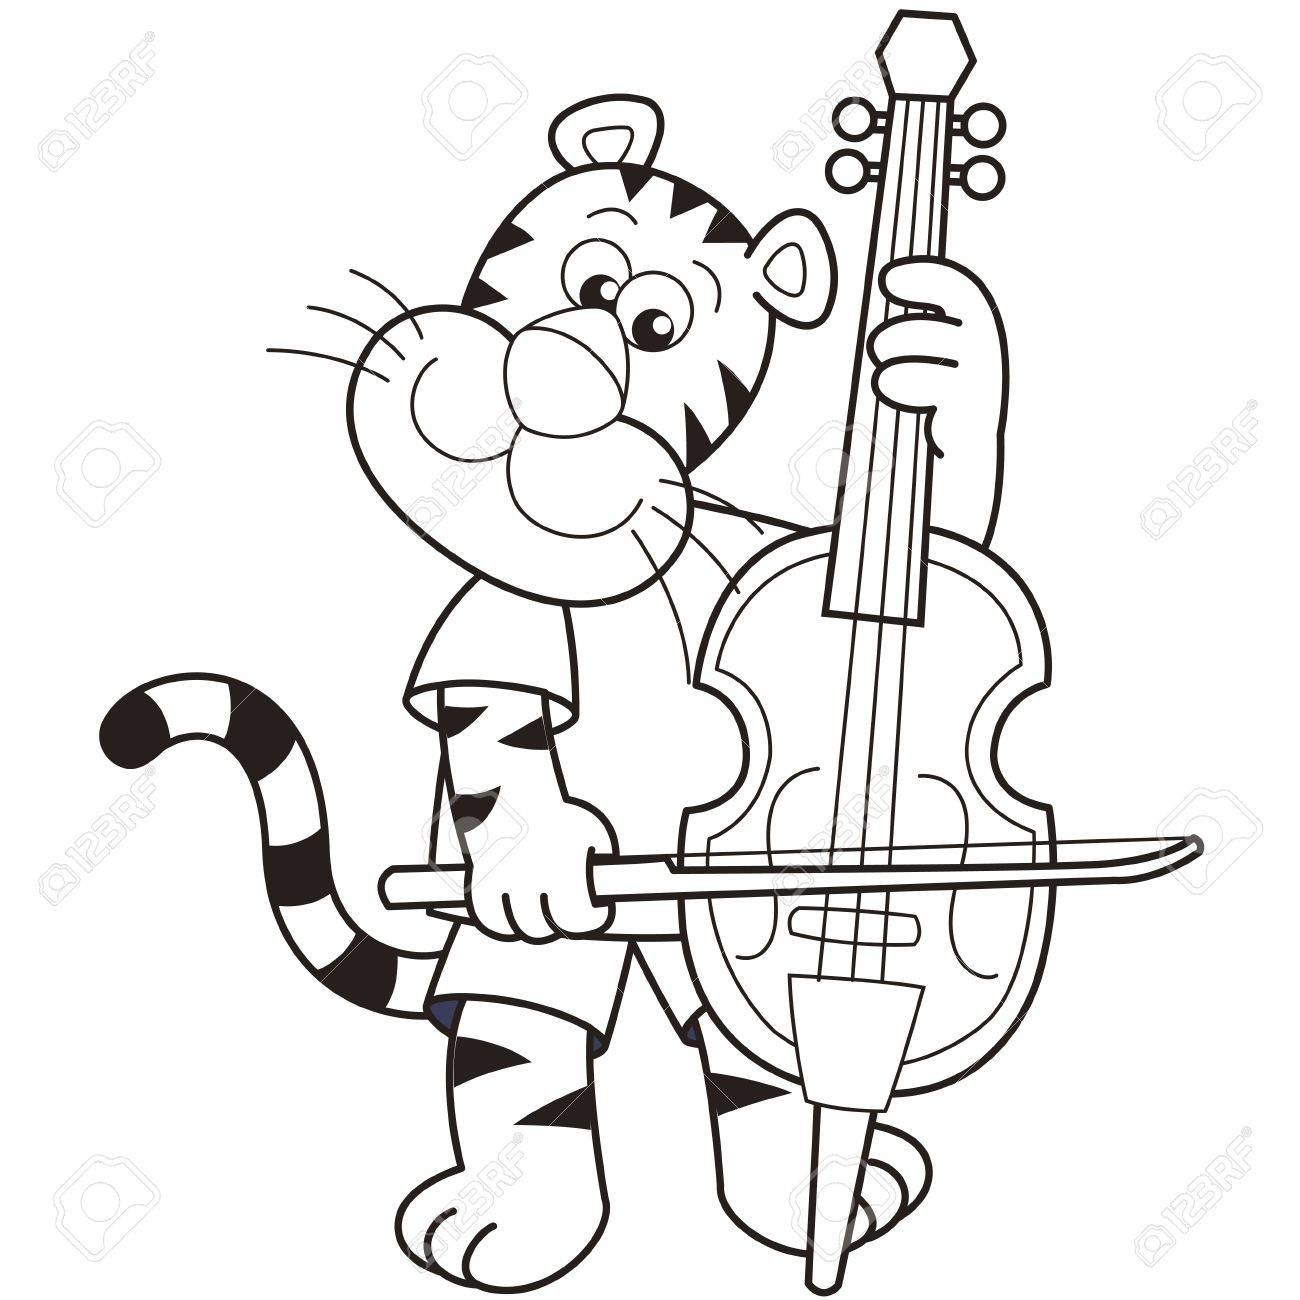 cartoon tiger playing a cello royalty free cliparts vectors and